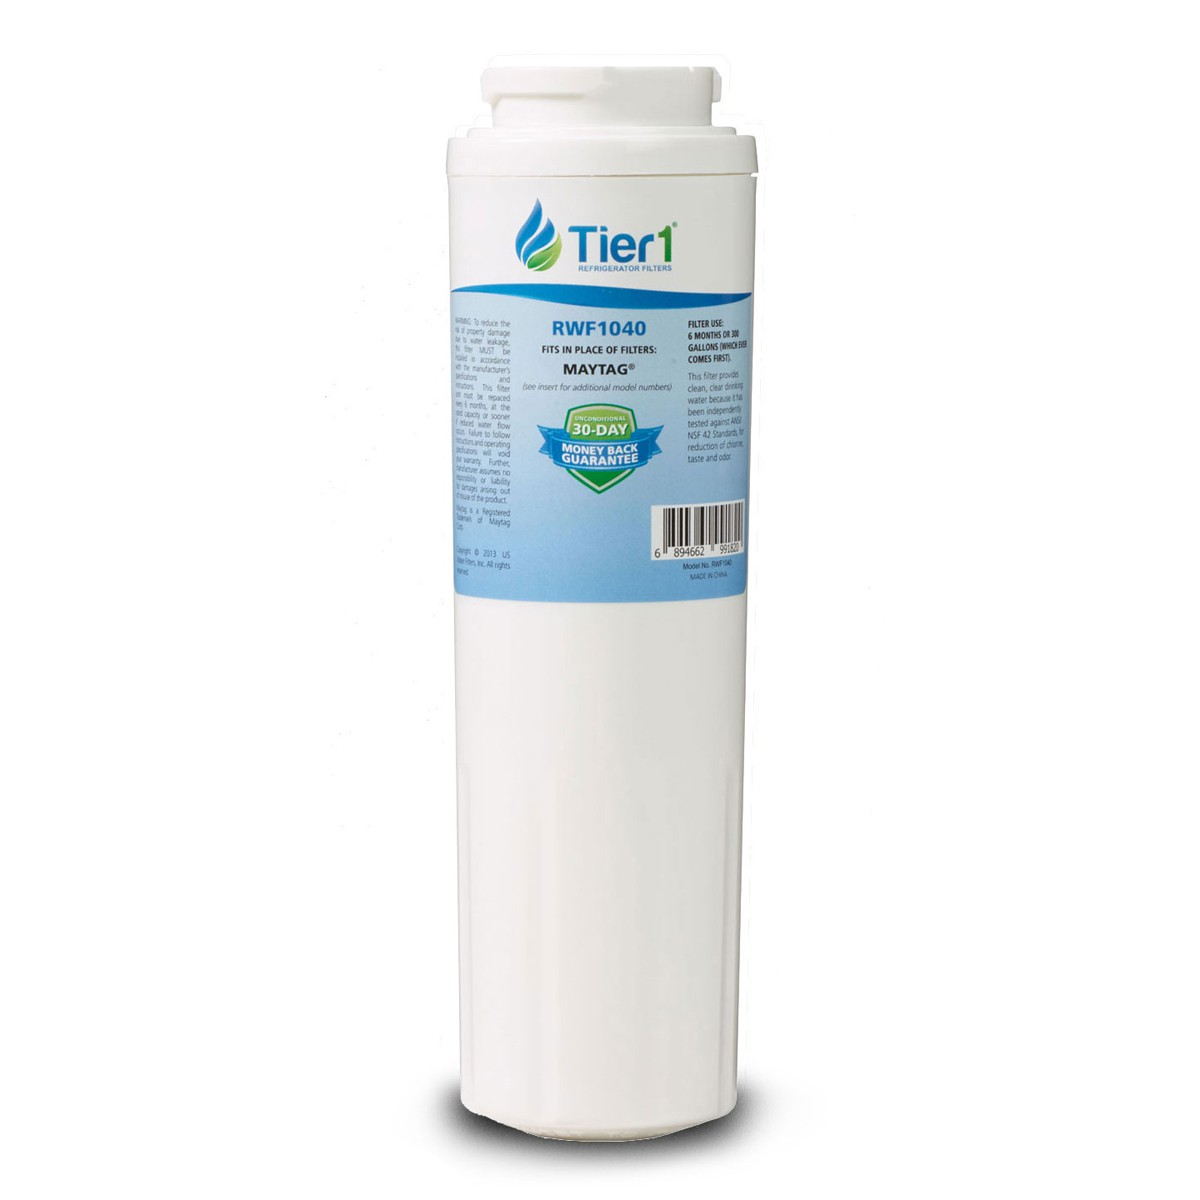 Maytag Ukf8001 Refrigerator Water Filter Replacement Tier1